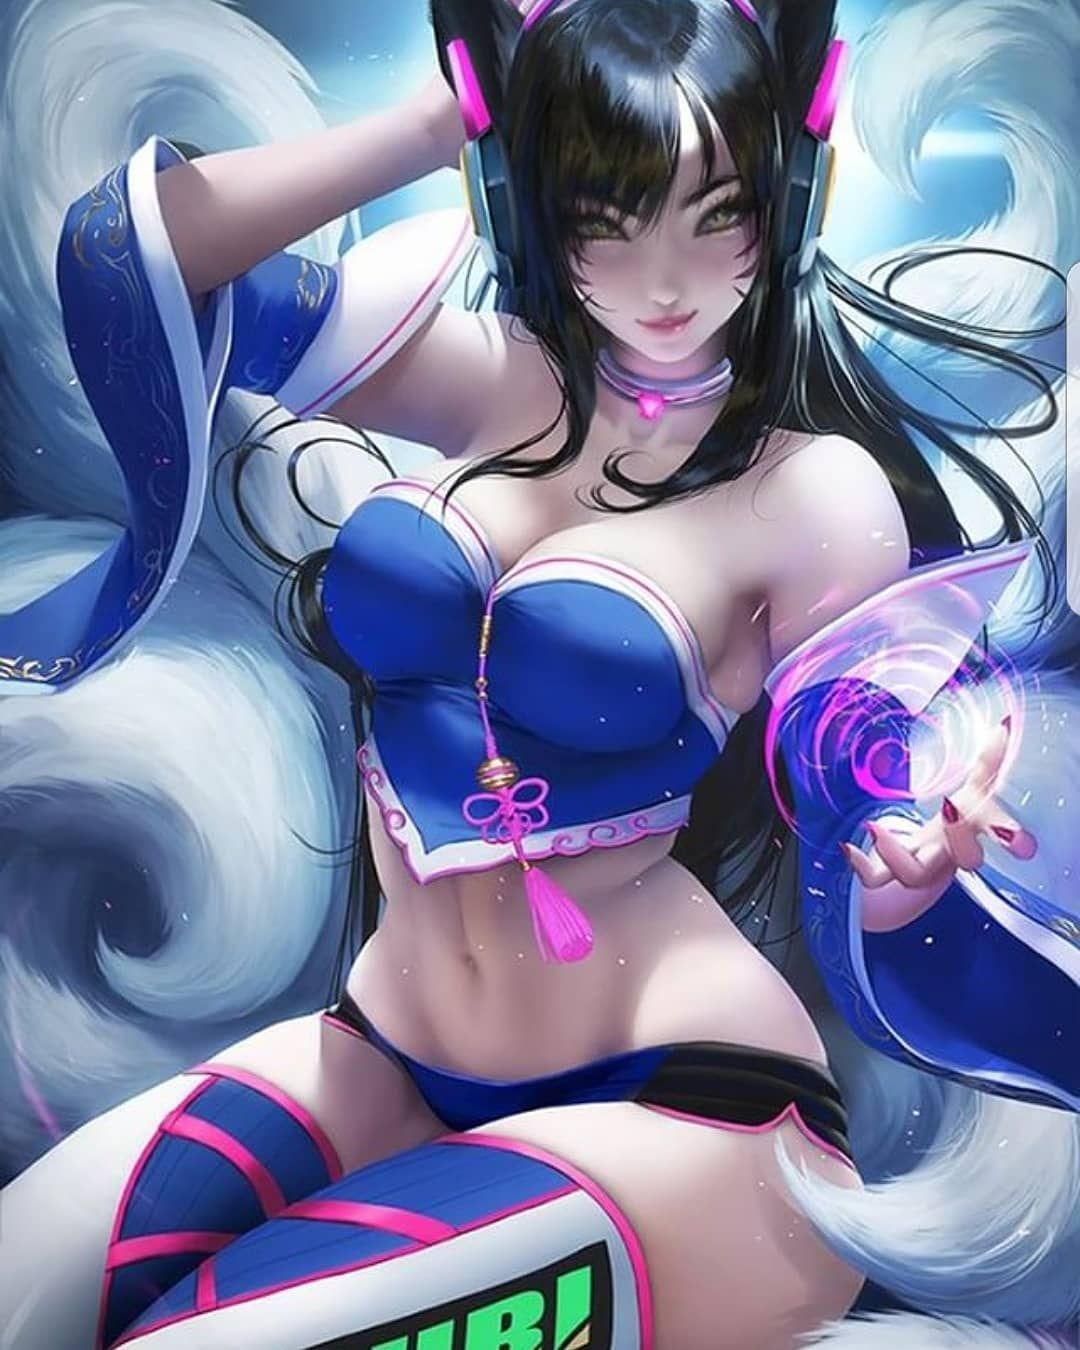 geek nerd girl anime Sexy